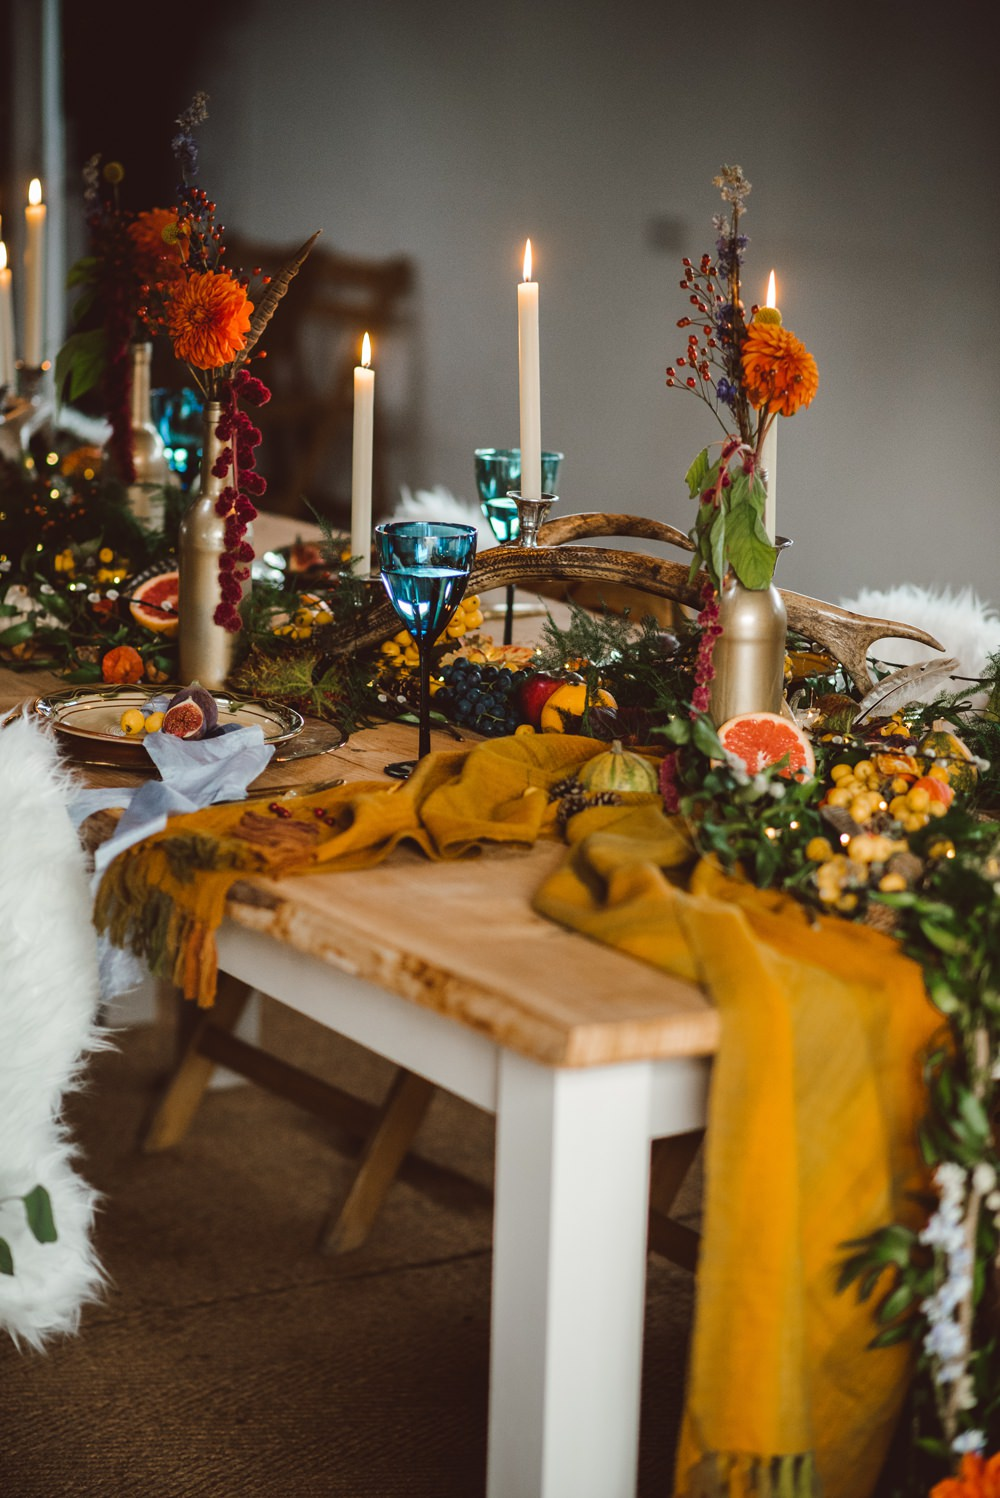 Tablescape Deor Flowers Bottles Fruit Candles Antlers Table Orange Runner Rustic Christmas Wedding Ideas Dhw Photography